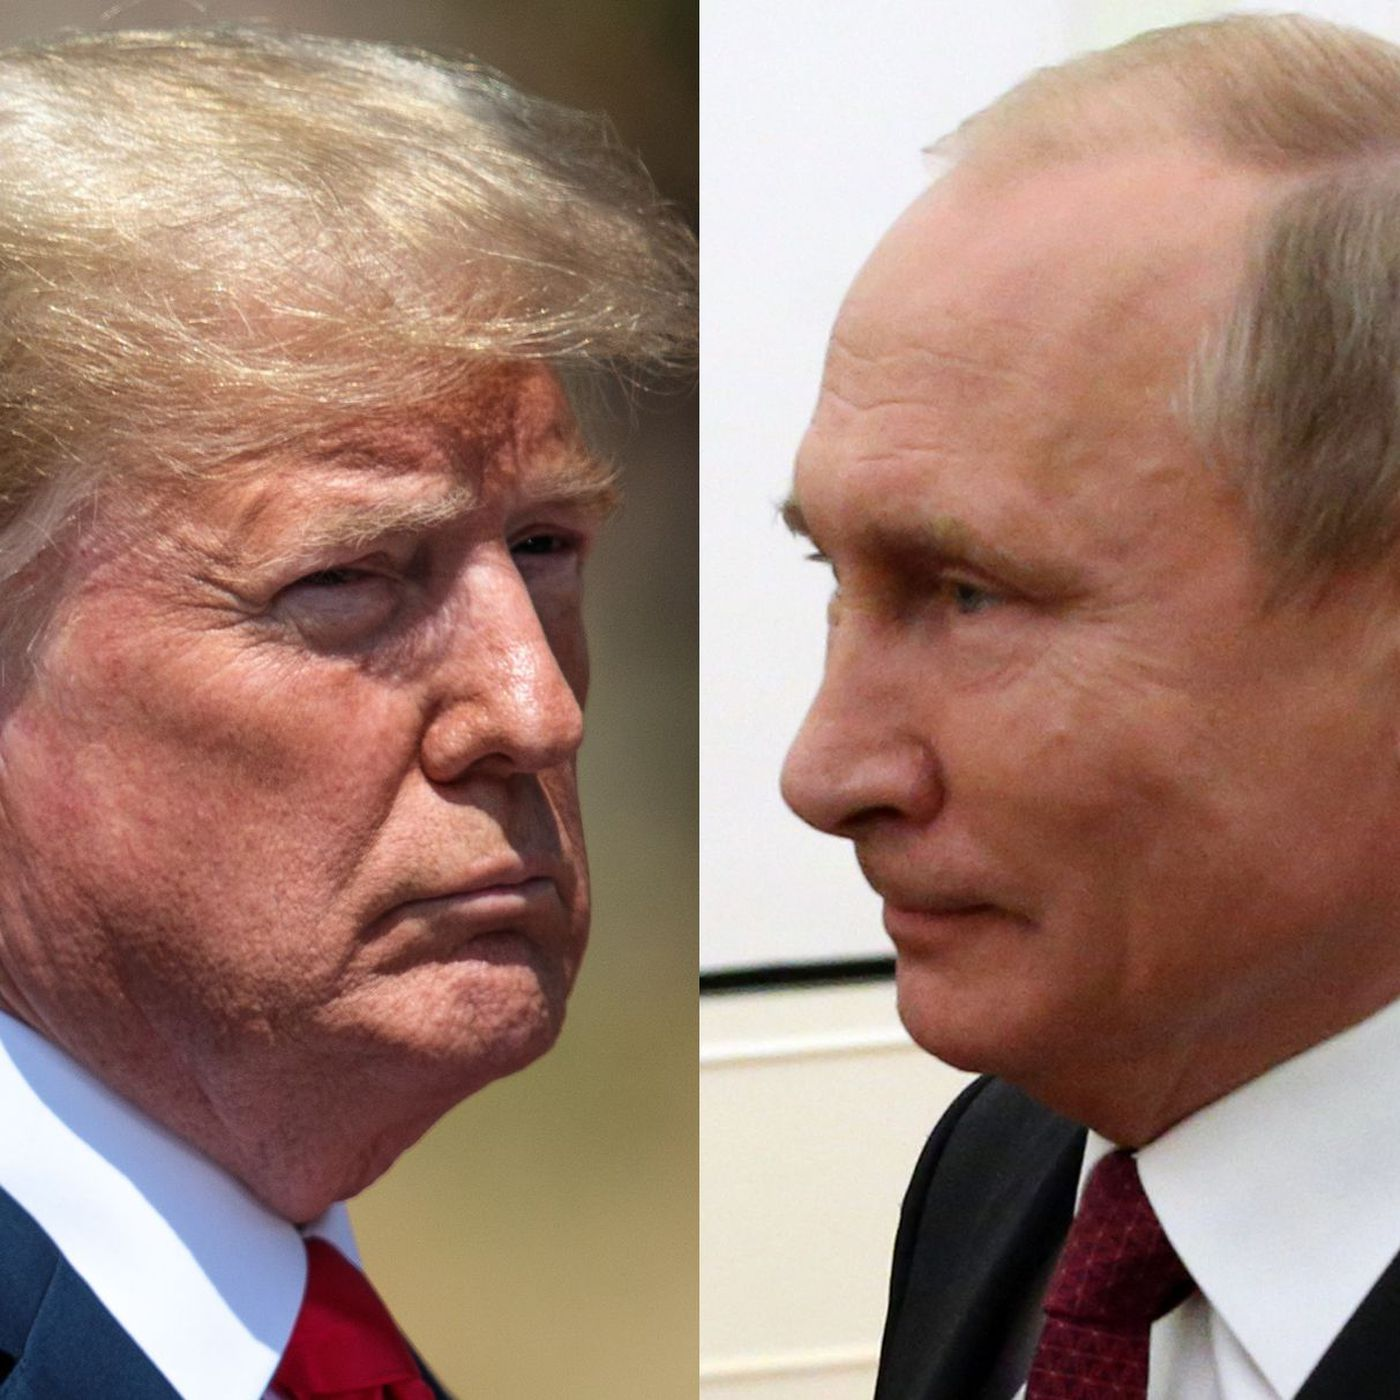 recode.net - Recode Staff - Recode Daily: What to watch for at today's Trump-Putin summit